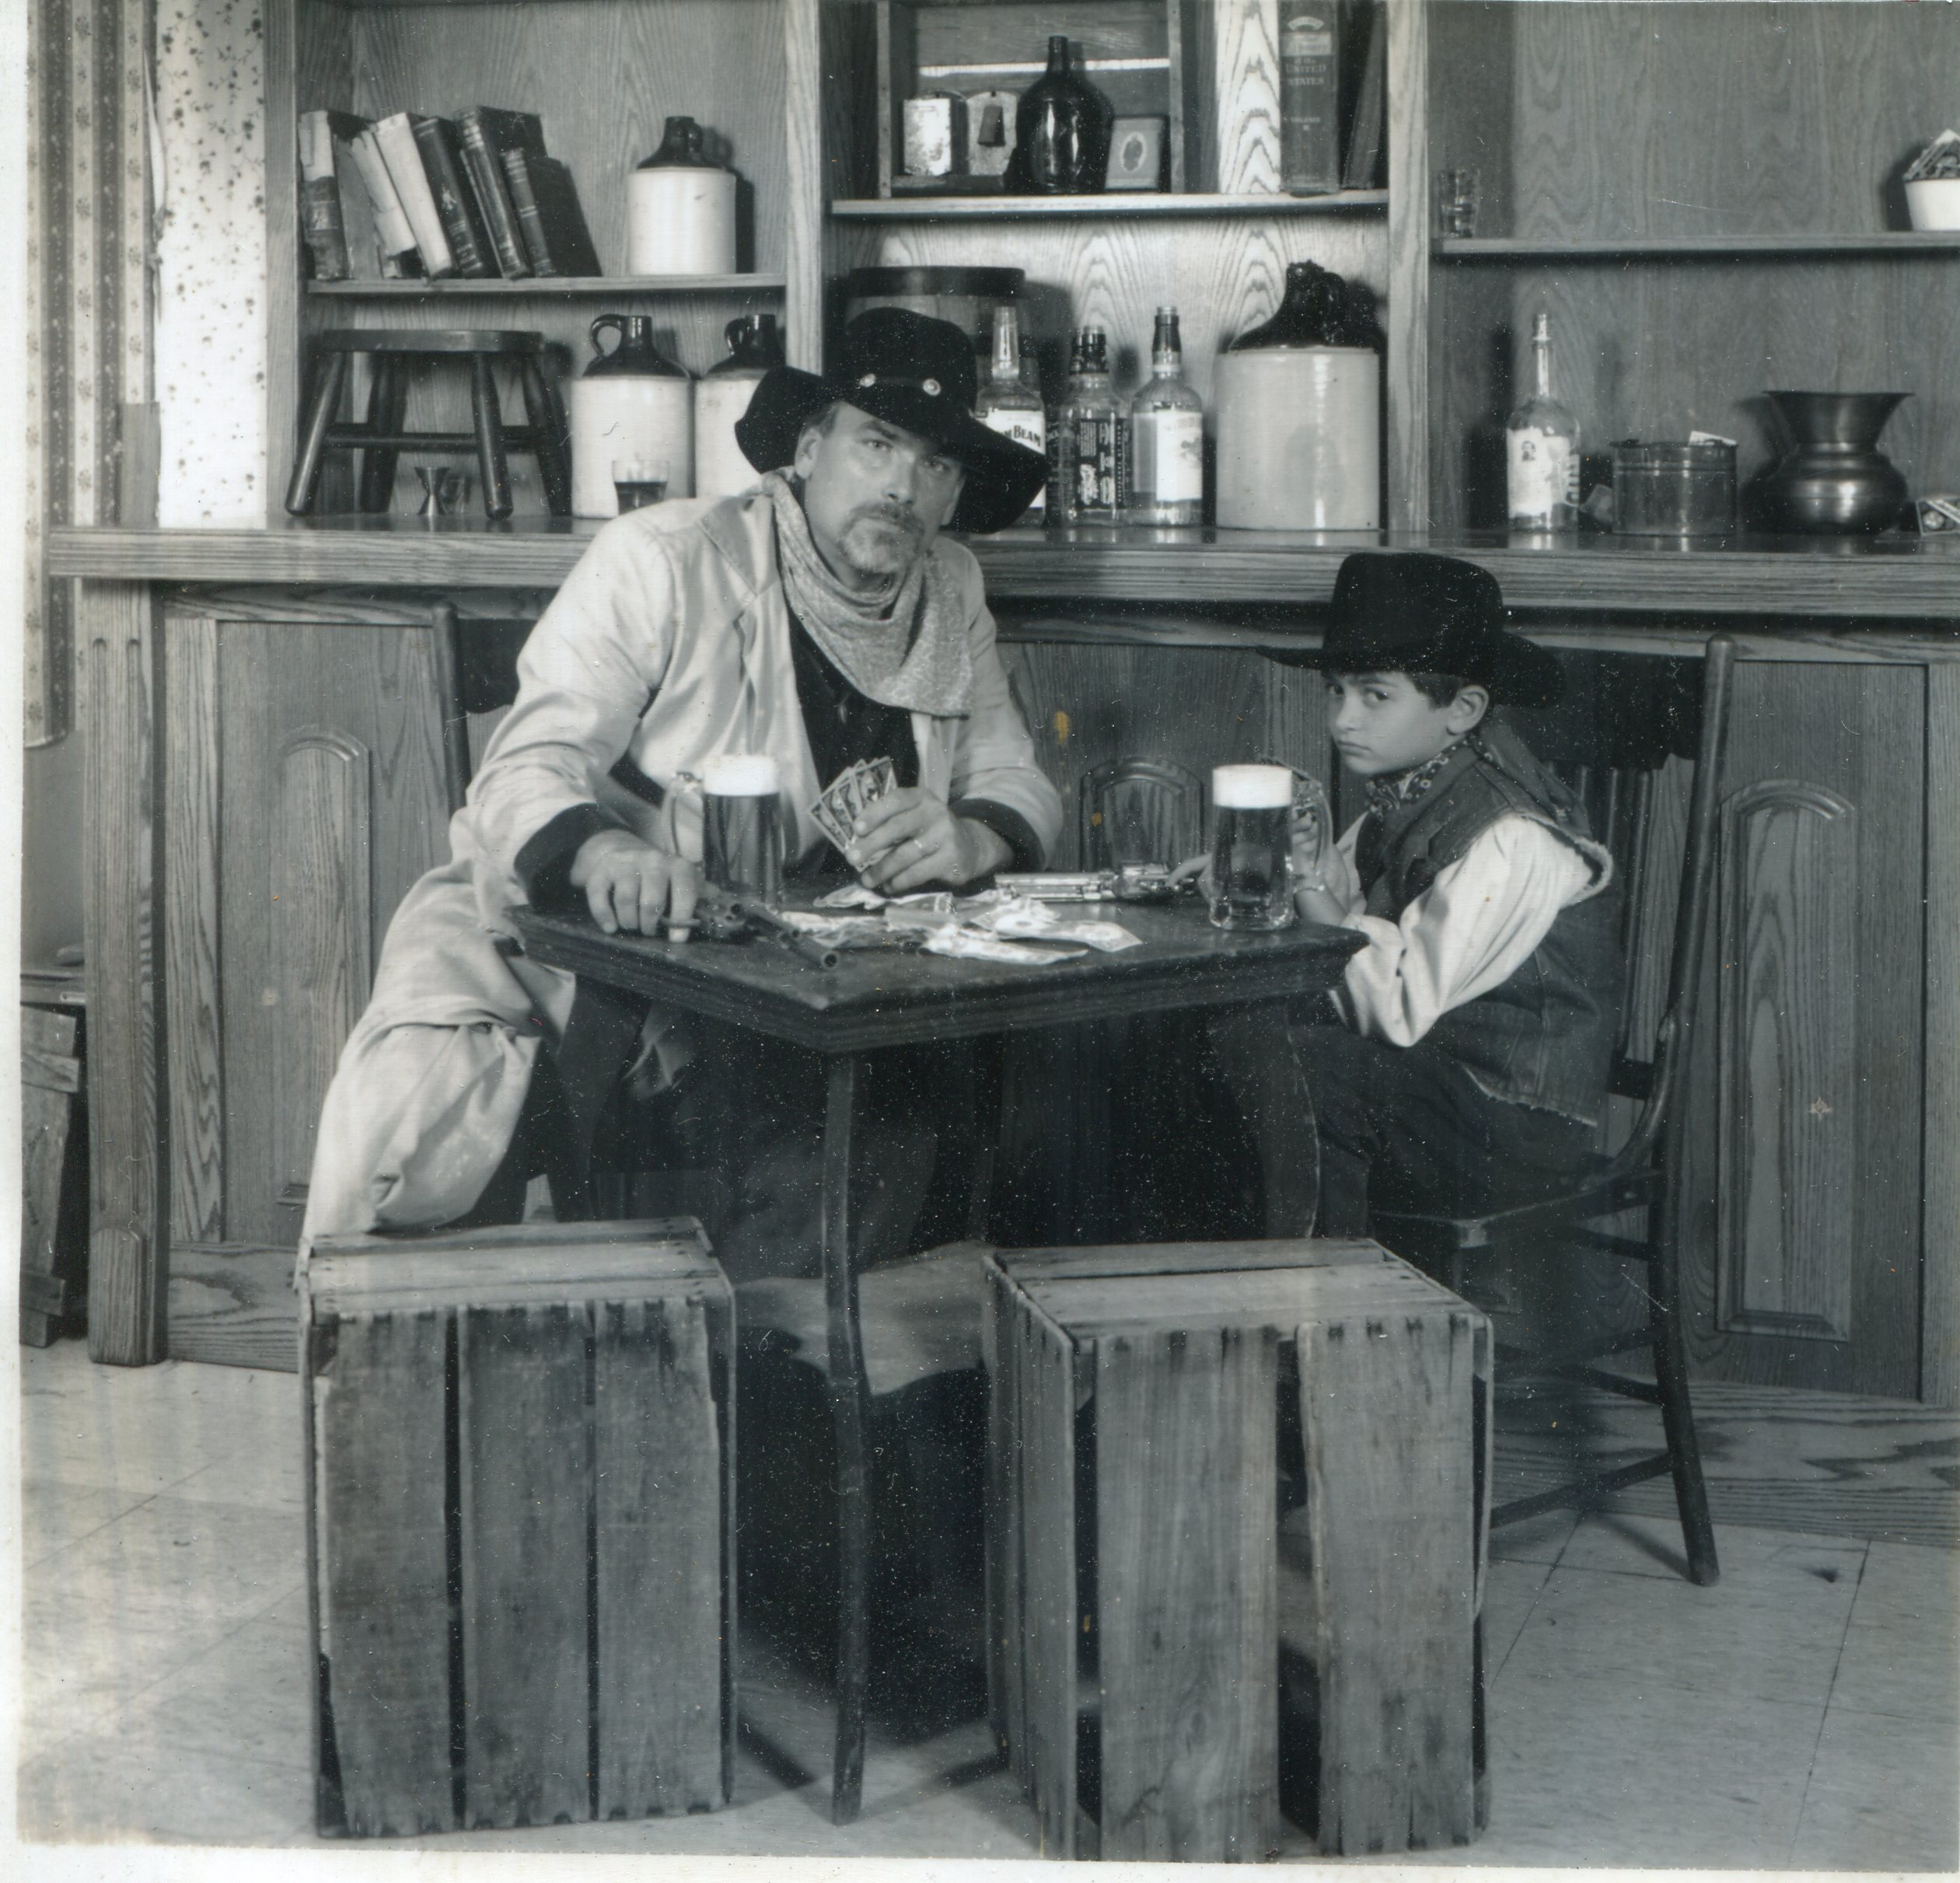 A black and white photo of a man and a child in old western clothes.